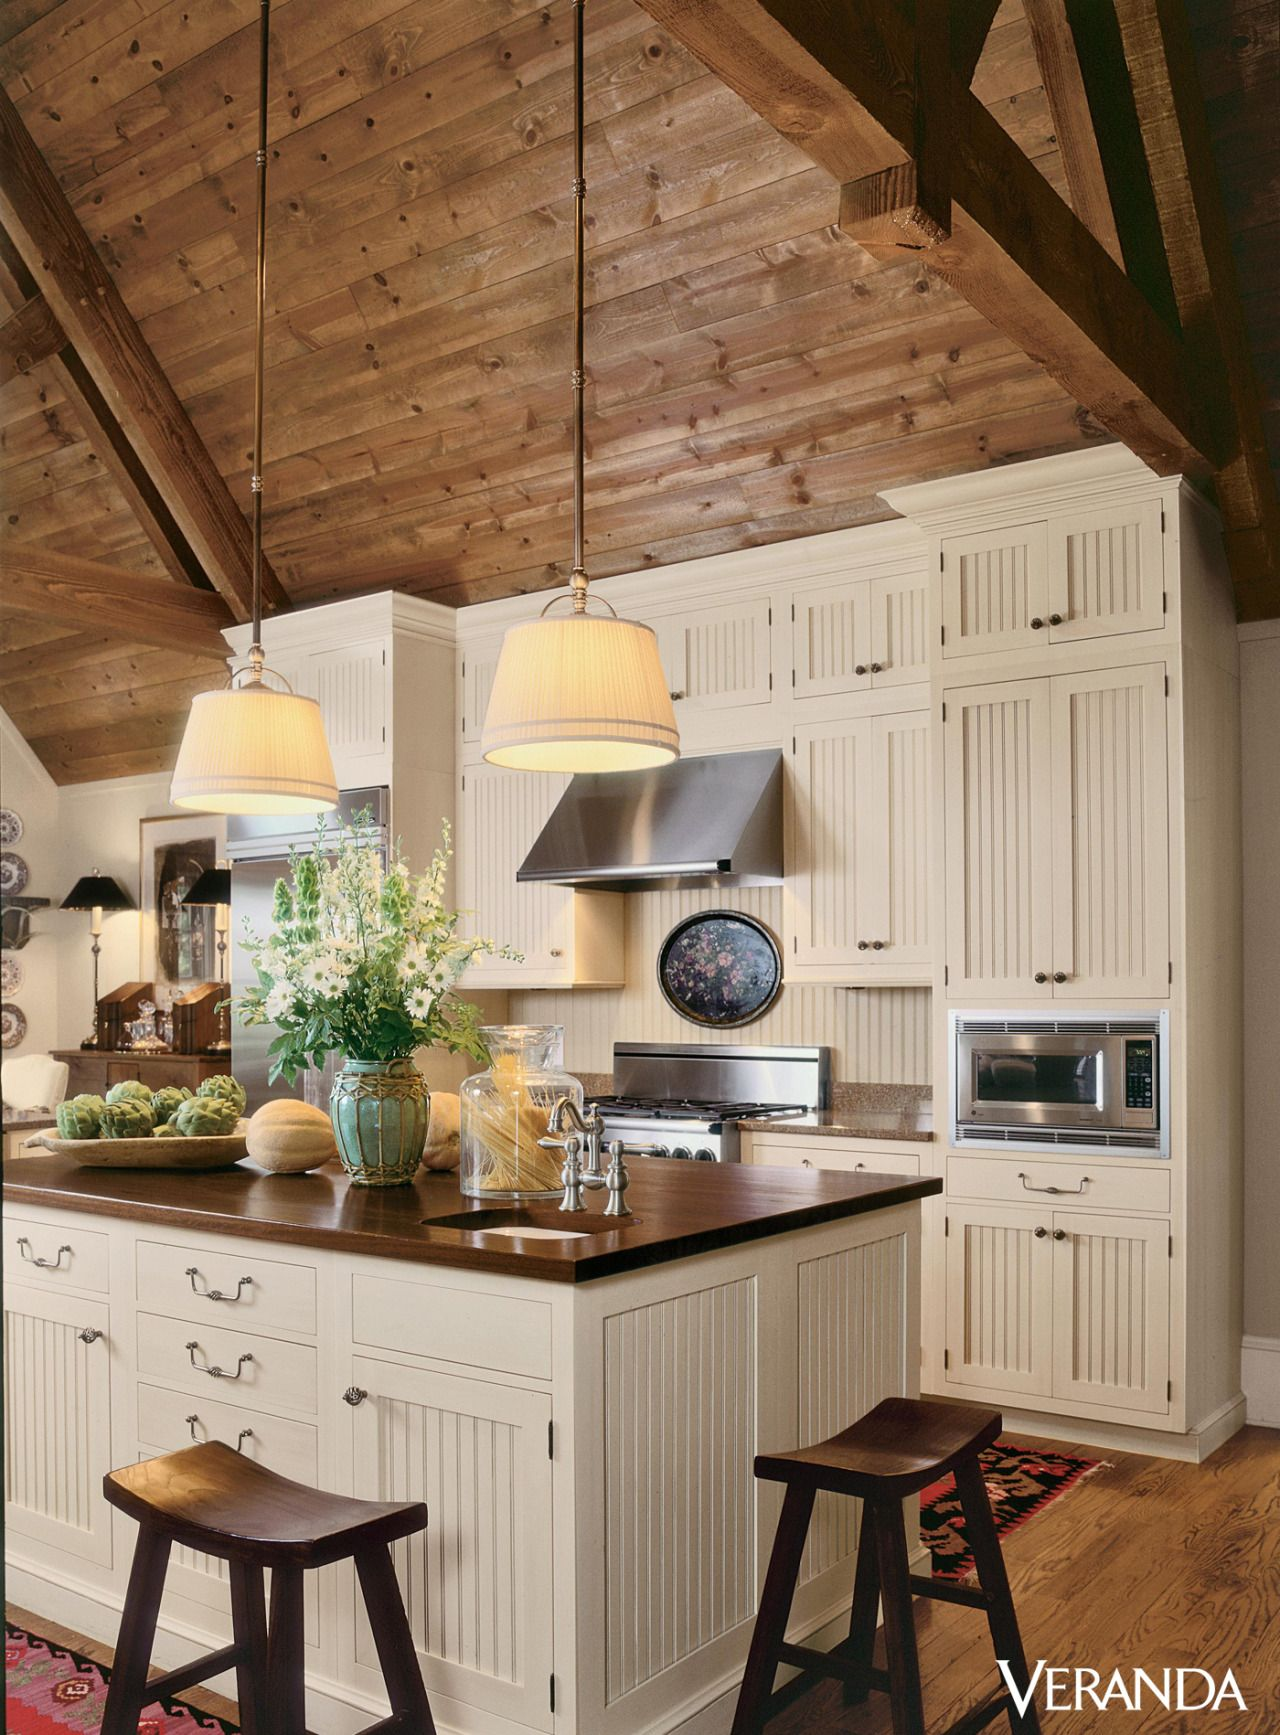 15 rustic kitchen cabinets designs ideas with photo gallery farmhouse style kitchen cabinets on kitchen cabinets rustic farmhouse style id=90899